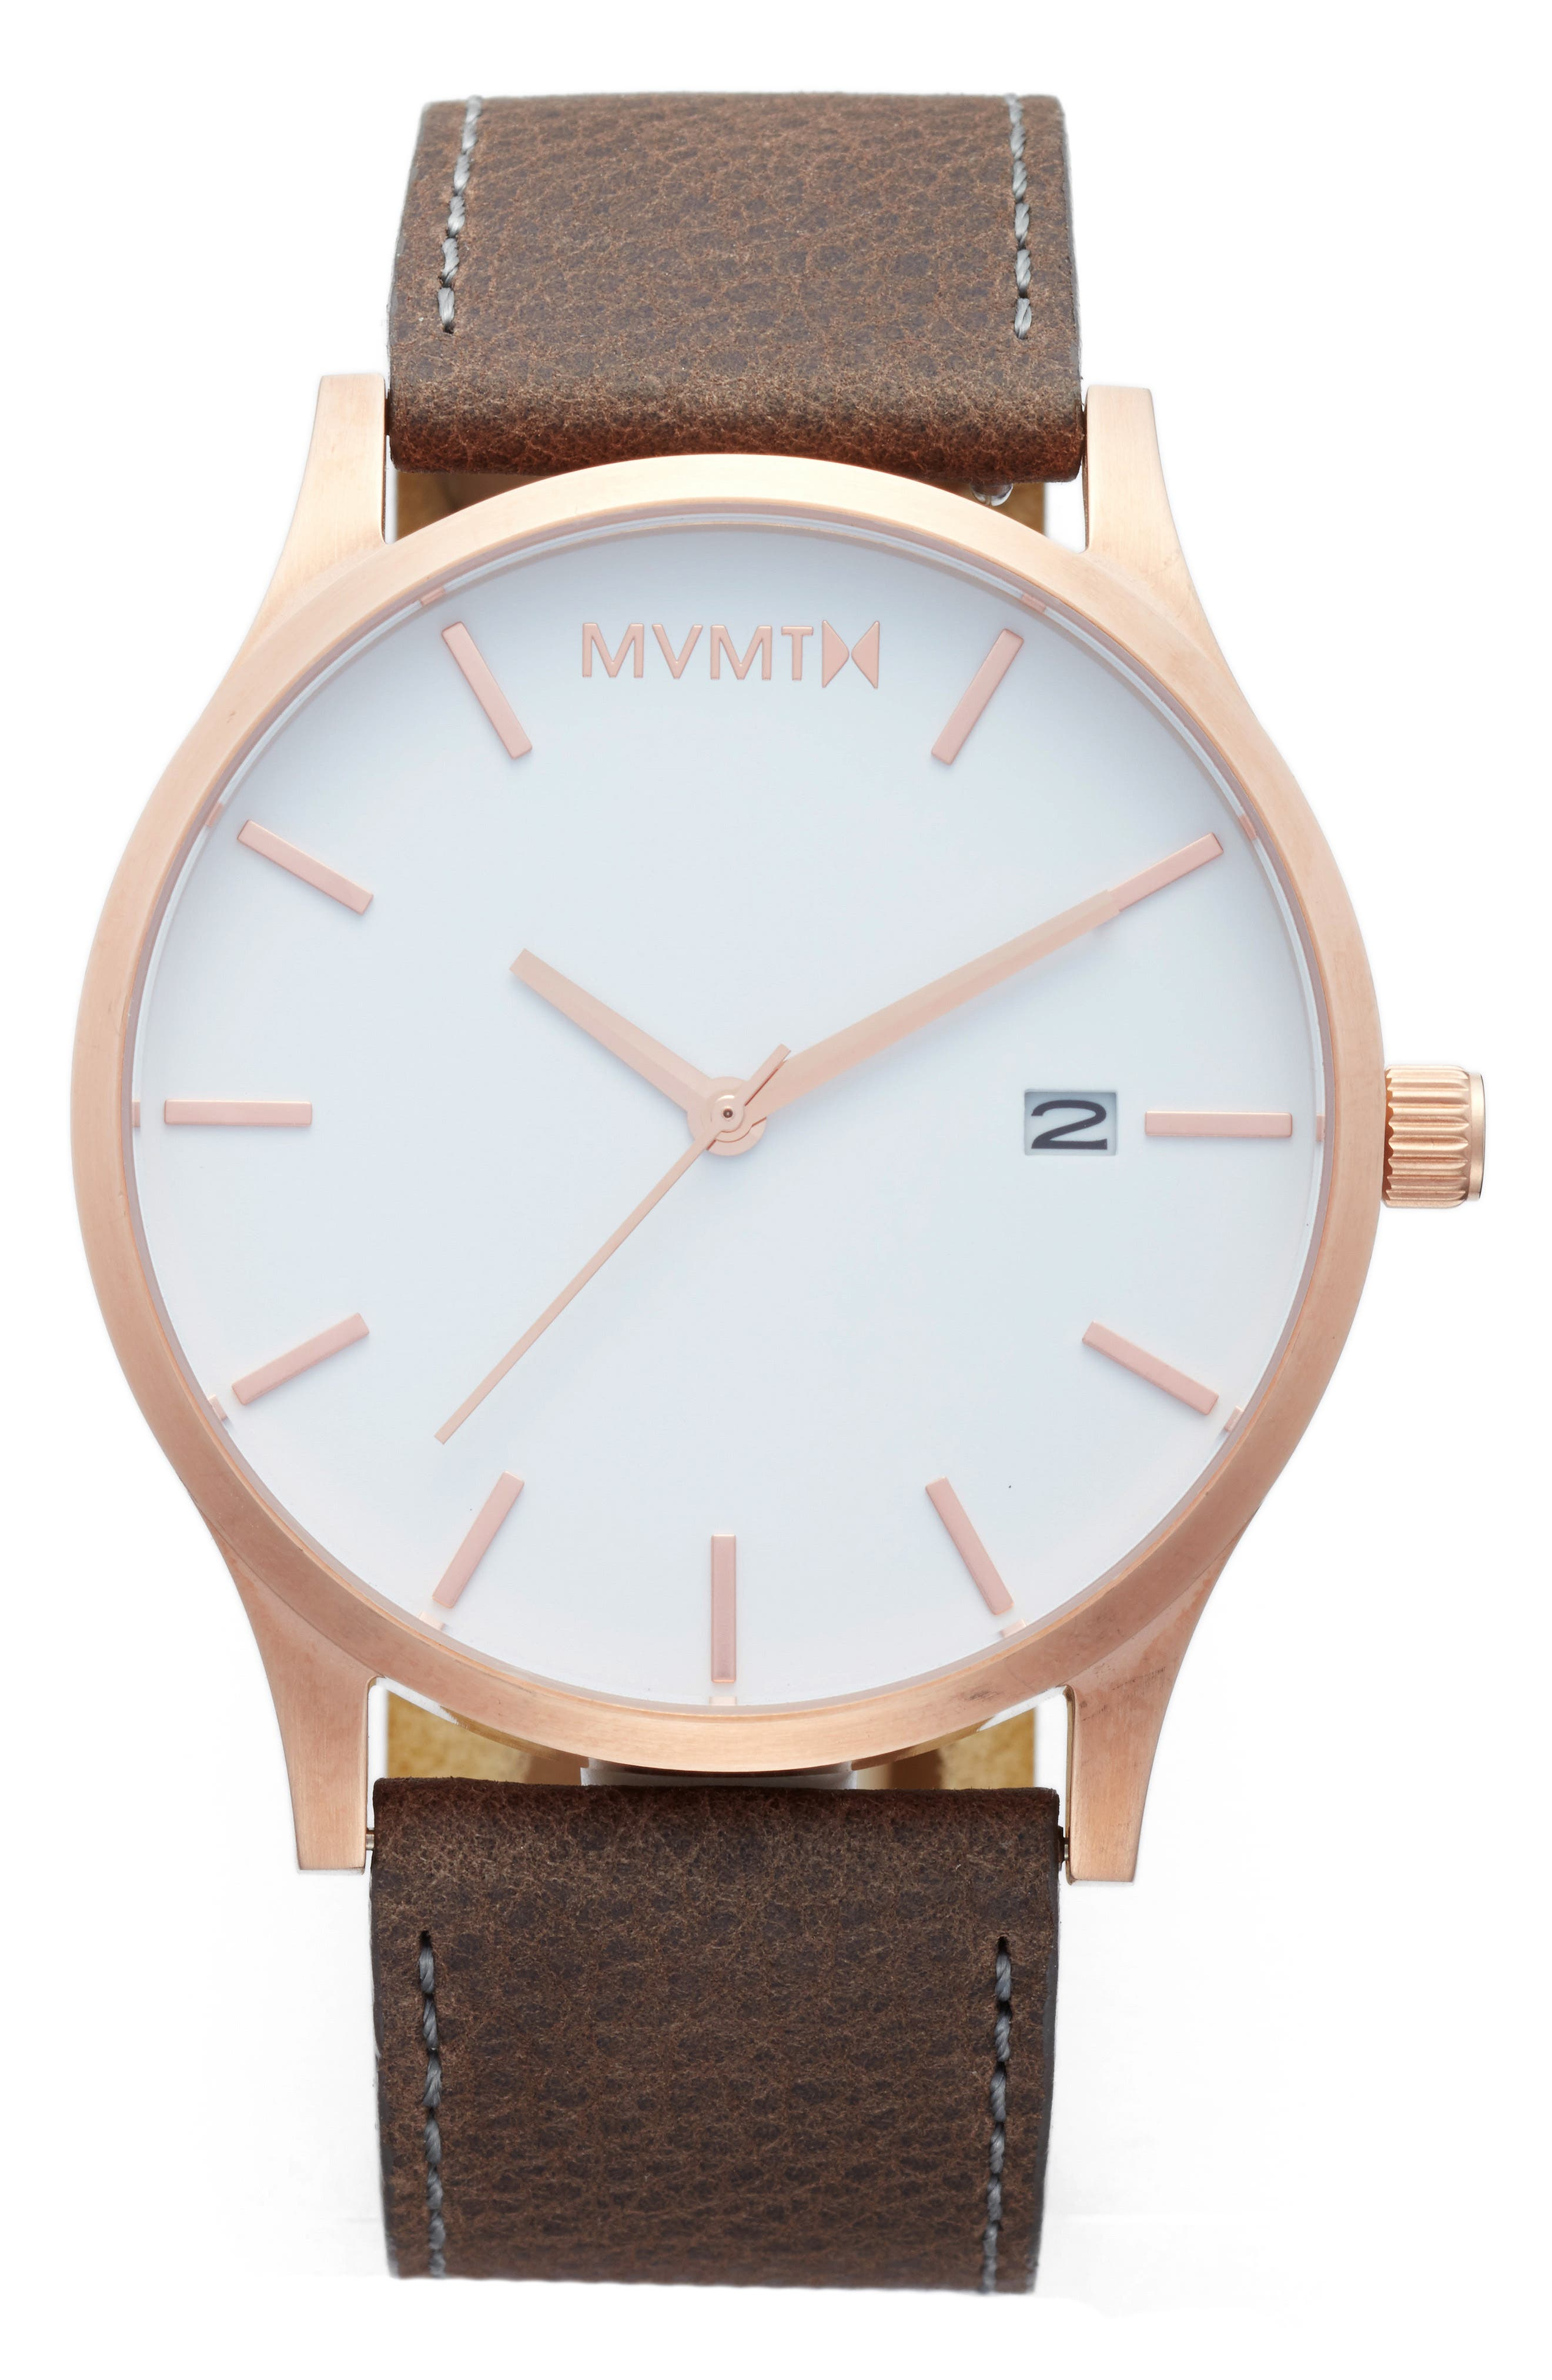 Main Image - MVMT The Classic Leather Strap Watch, 45mm (Nordstrom Exclusive)